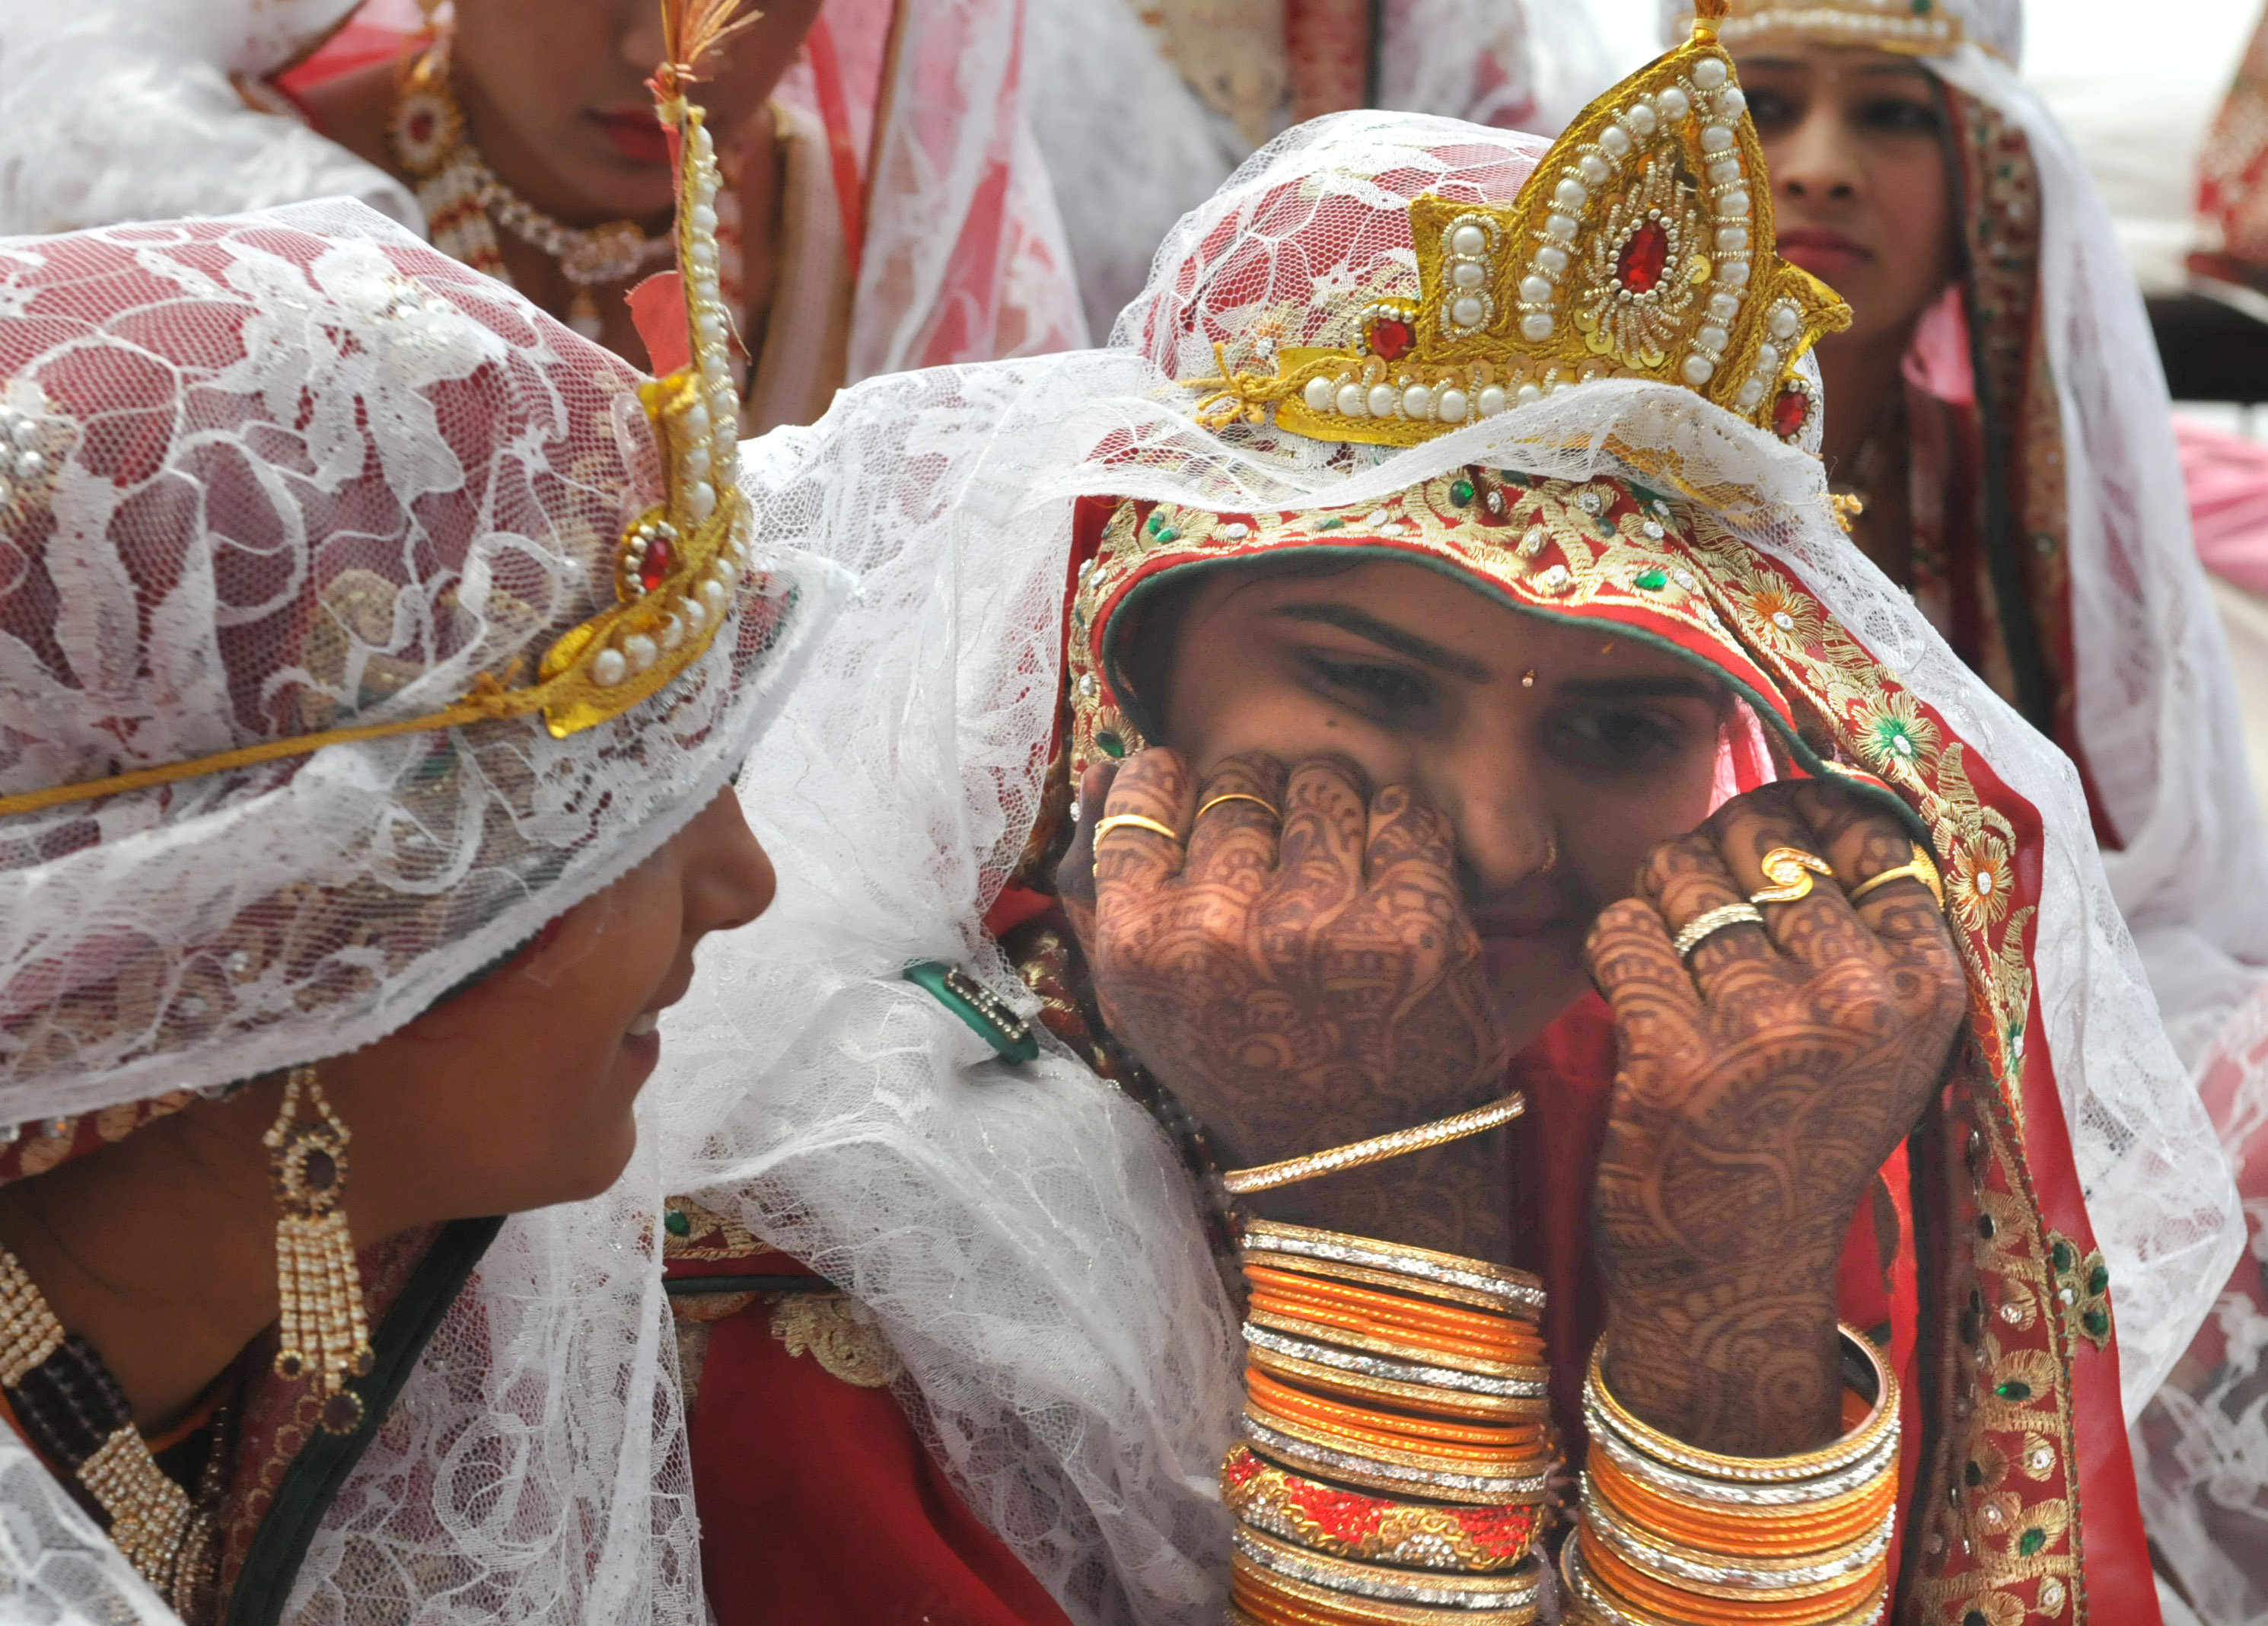 Brides share a light moment during mass marraige ceremony in Bhopal of Madhya Pradesh, India on April 29, 2017.